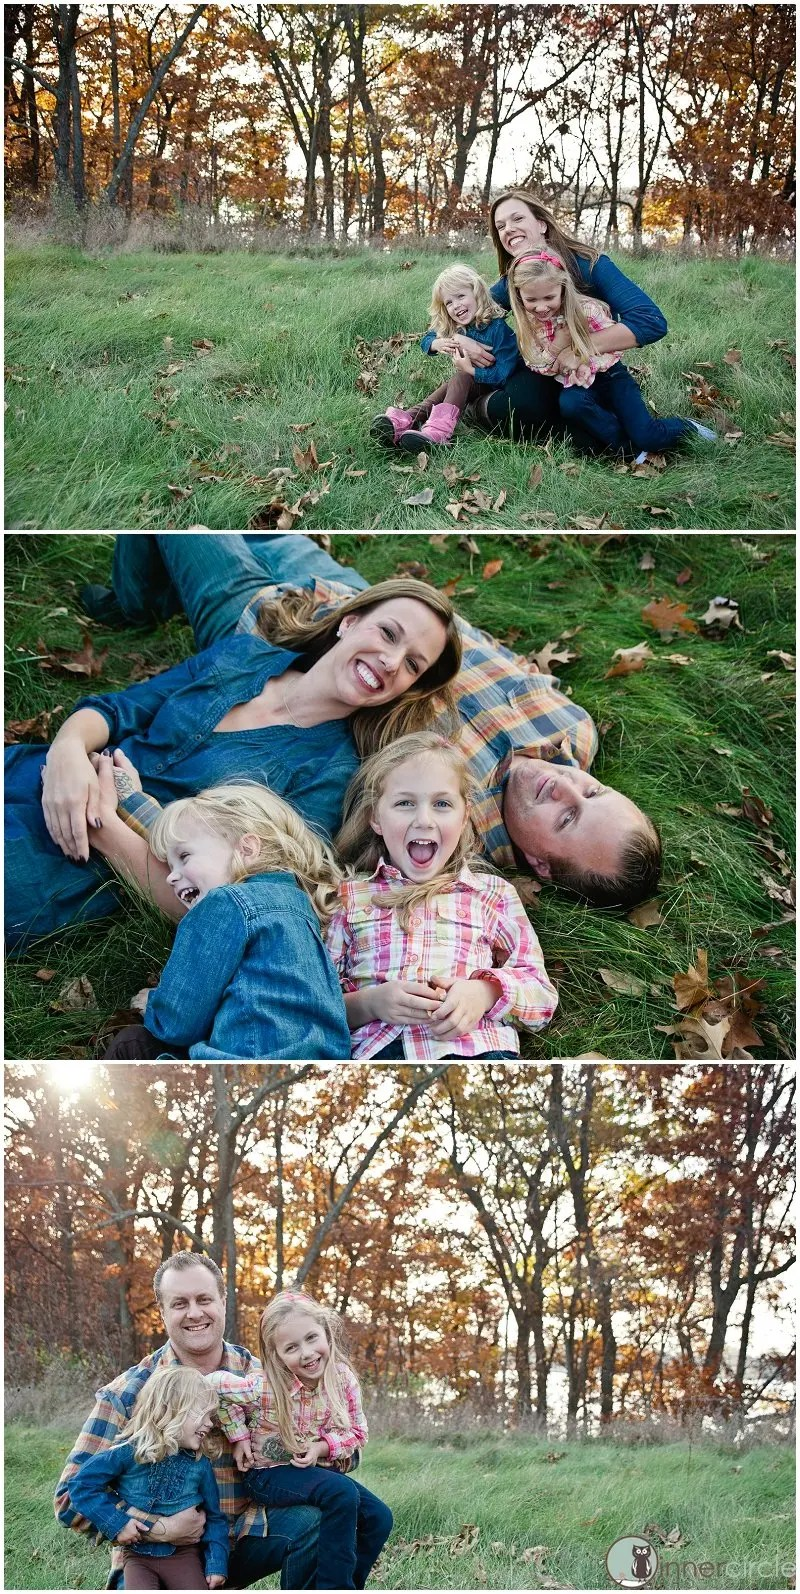 DSC_0975 Family Fun! A Beloved Family Session - Michigan Photographer